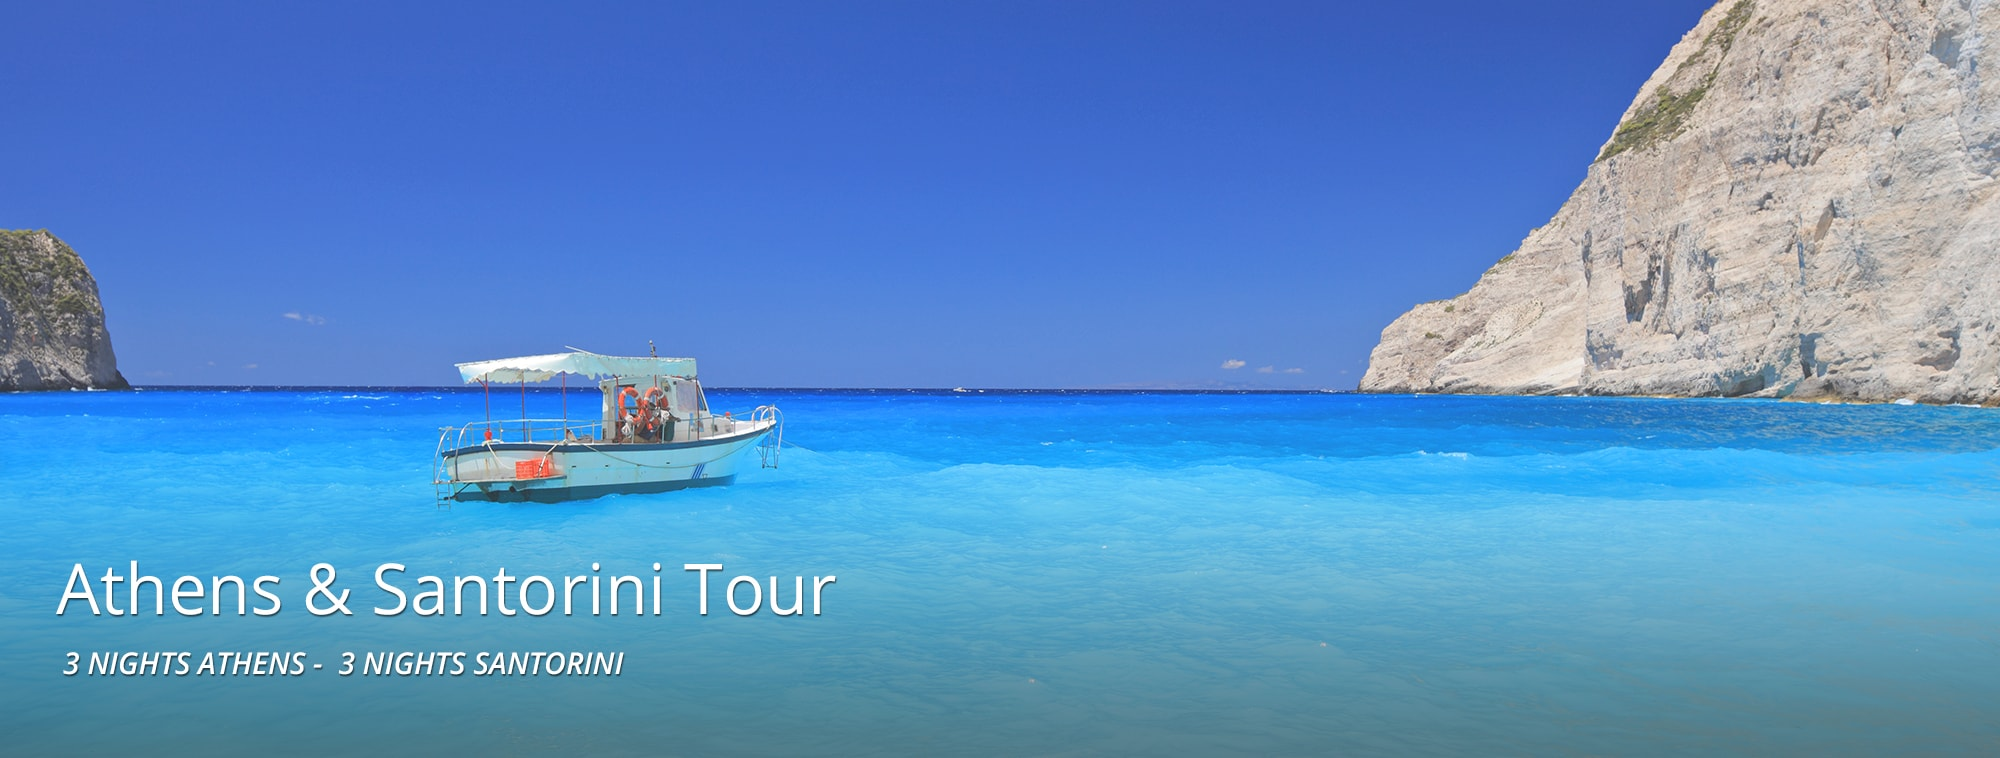 Athens - Santorini Package Banner